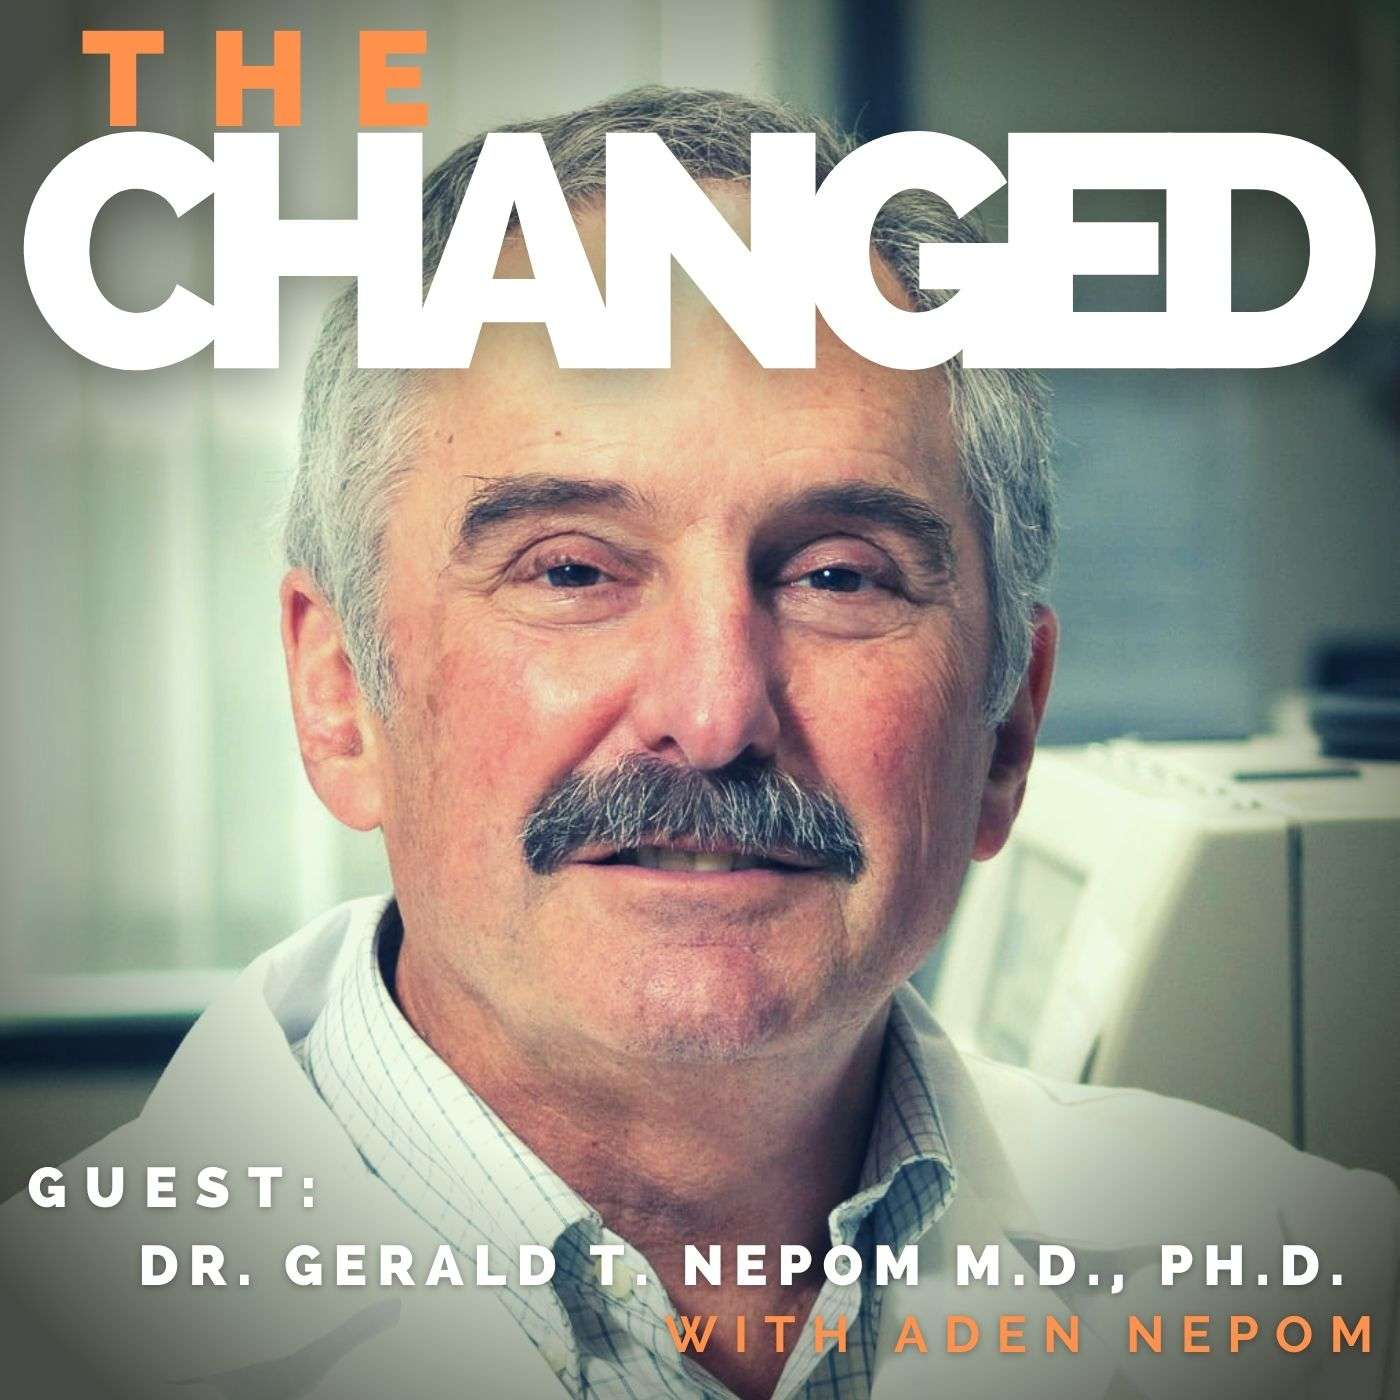 Episode 13: Science! Dr. Gerald T. Nepom M.D., Ph.D. Director of the Immune Tolerance Network